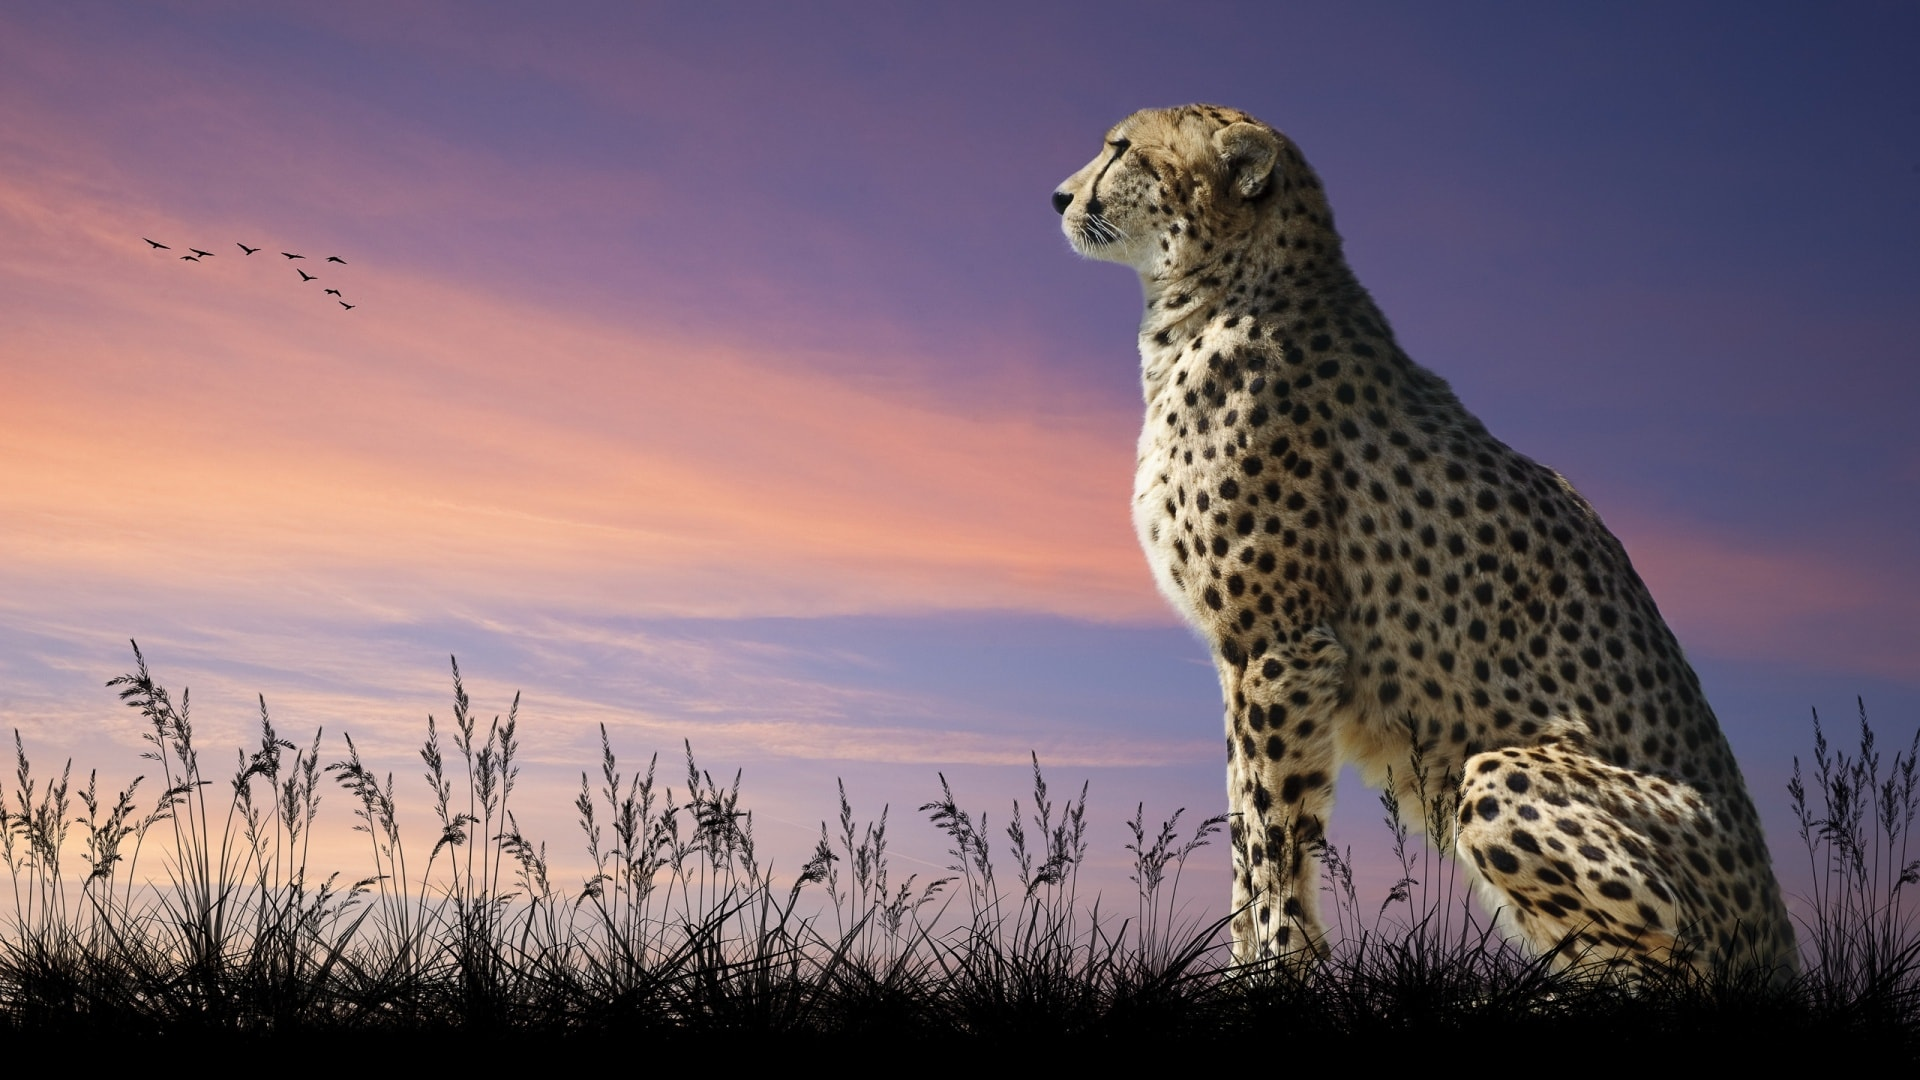 Cheetah HQ wallpapers